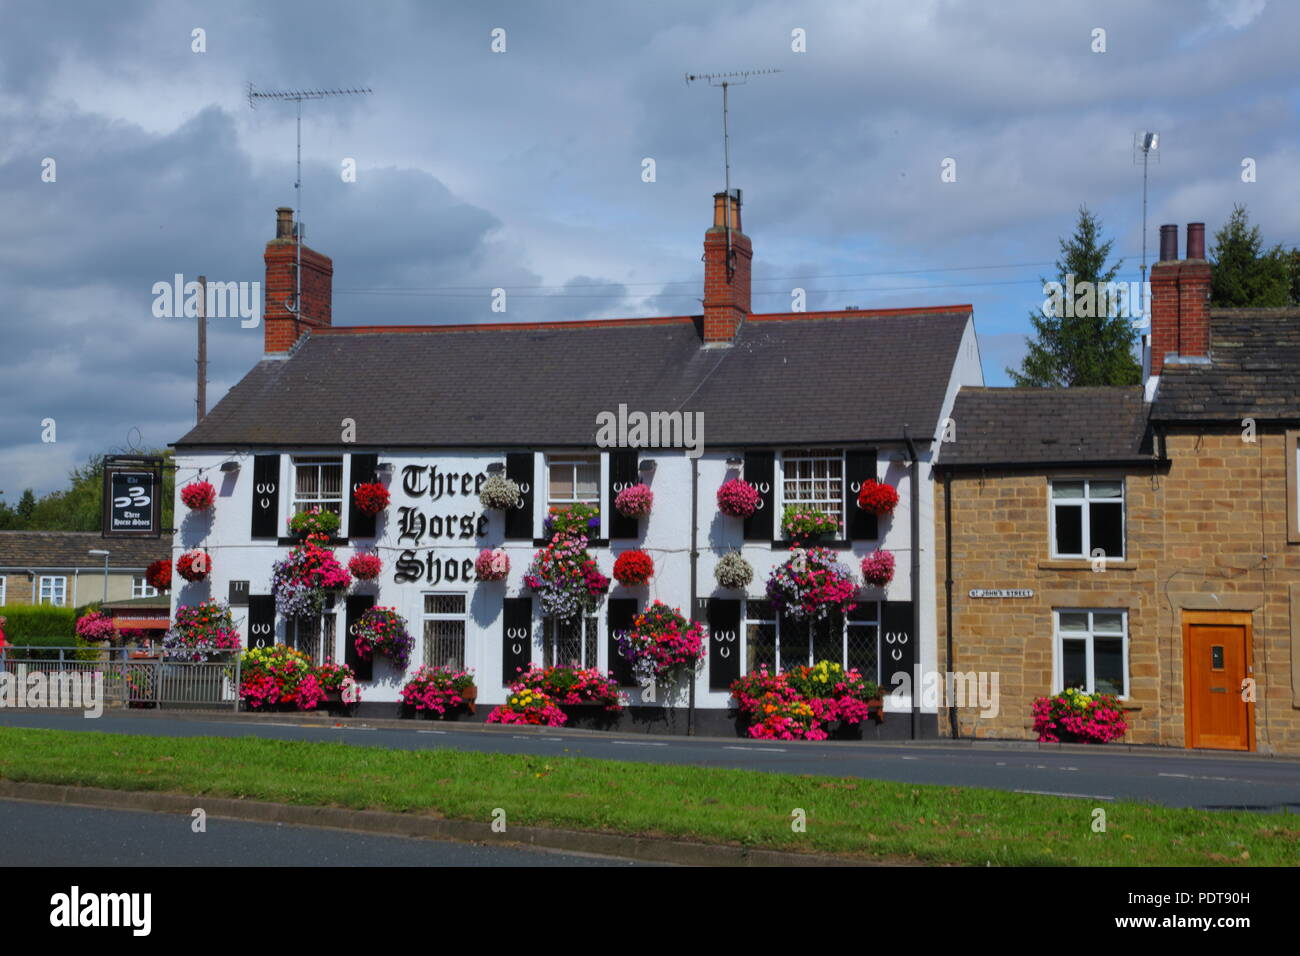 The Three Horse Shoes Pubic House & Restaurant covered in decorated hanging baskets. - Stock Image